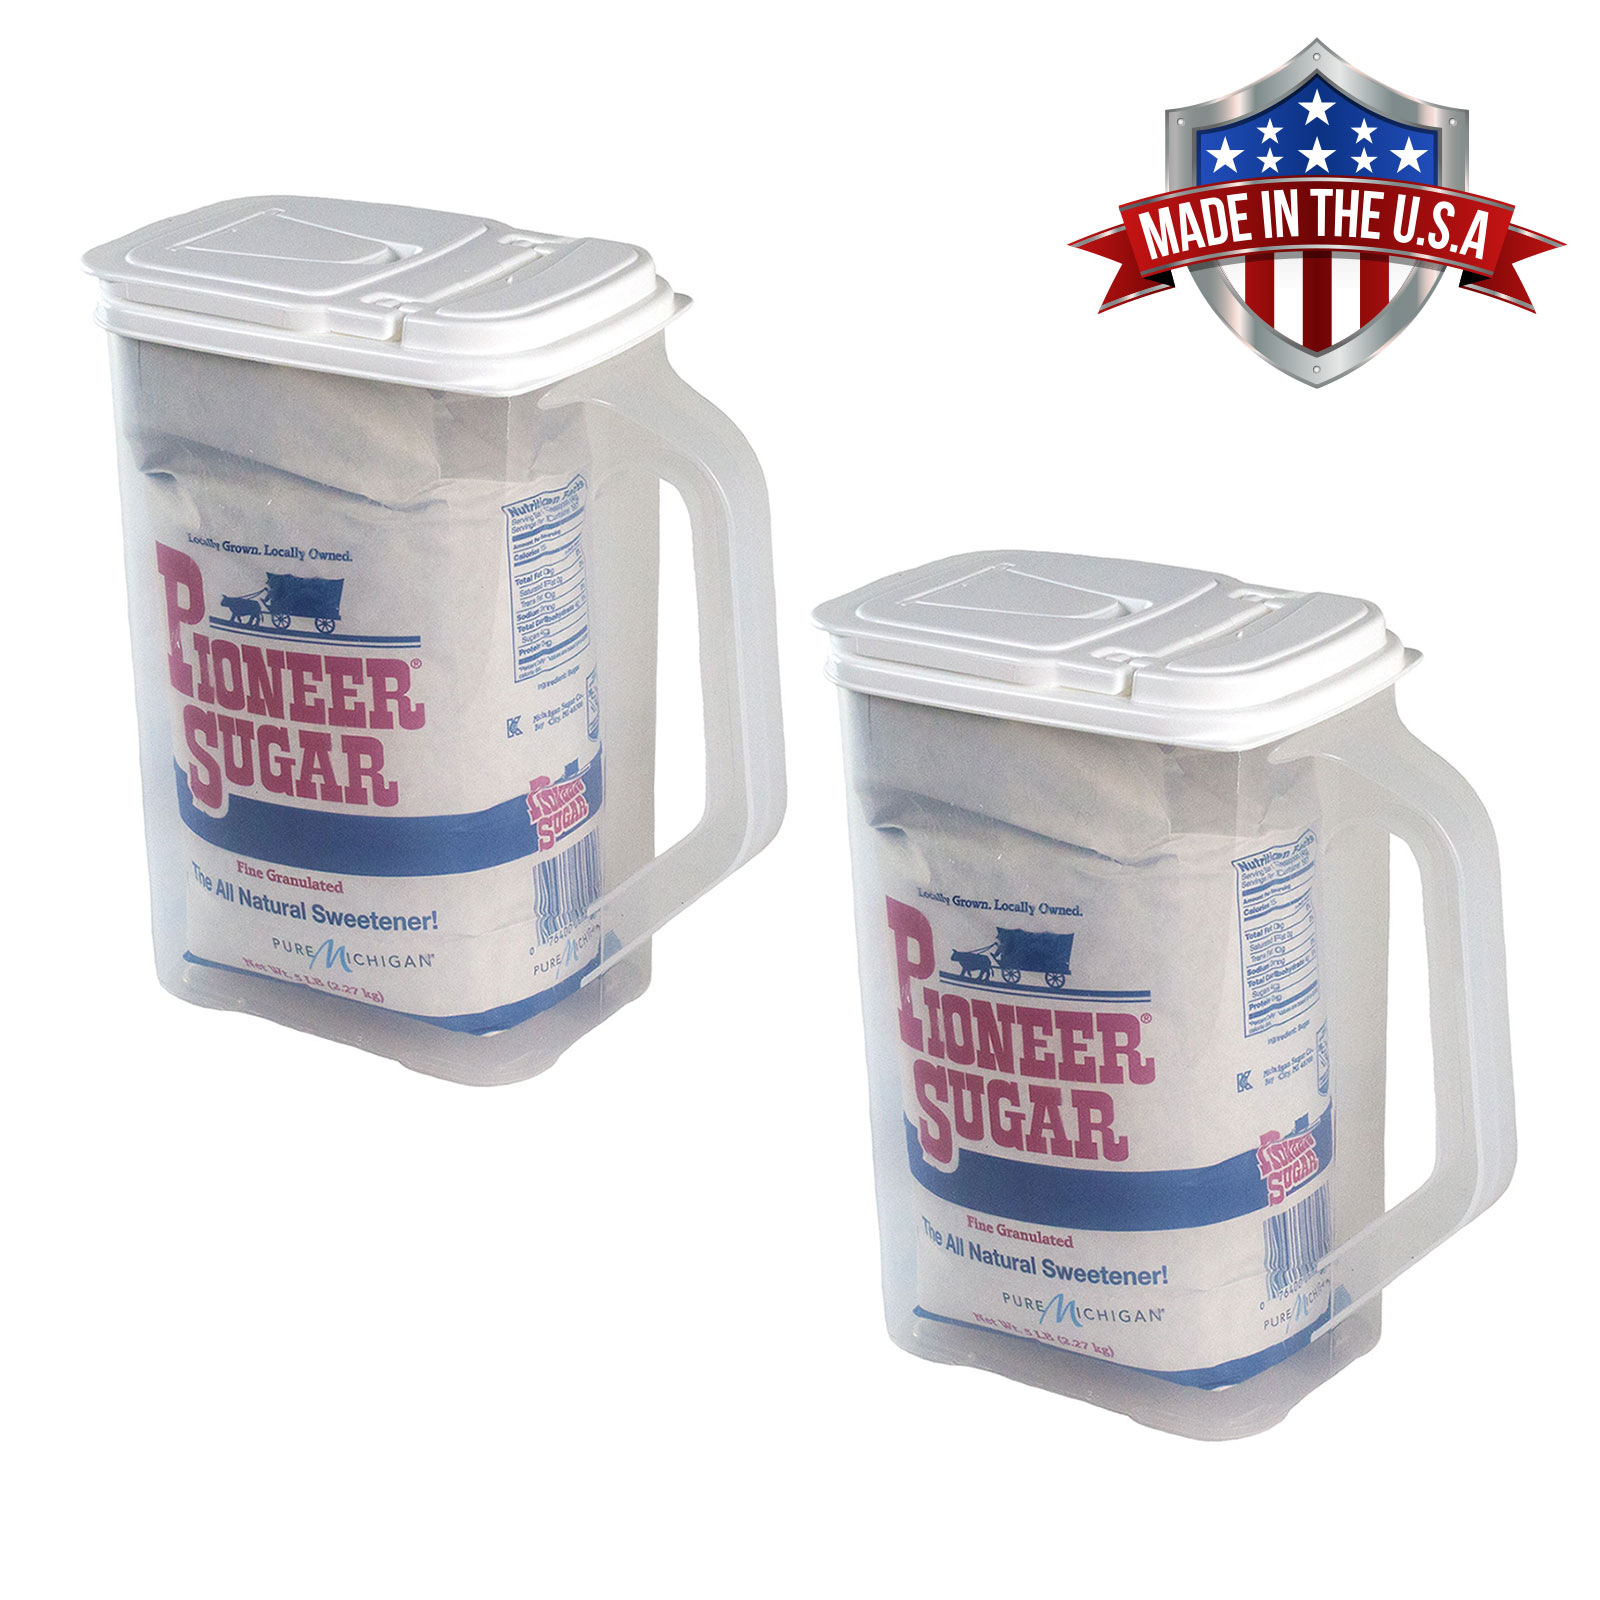 2 Pack of Food Storage Container 4 Quart Flour Sugar Keeper Pour n' Store with Handle